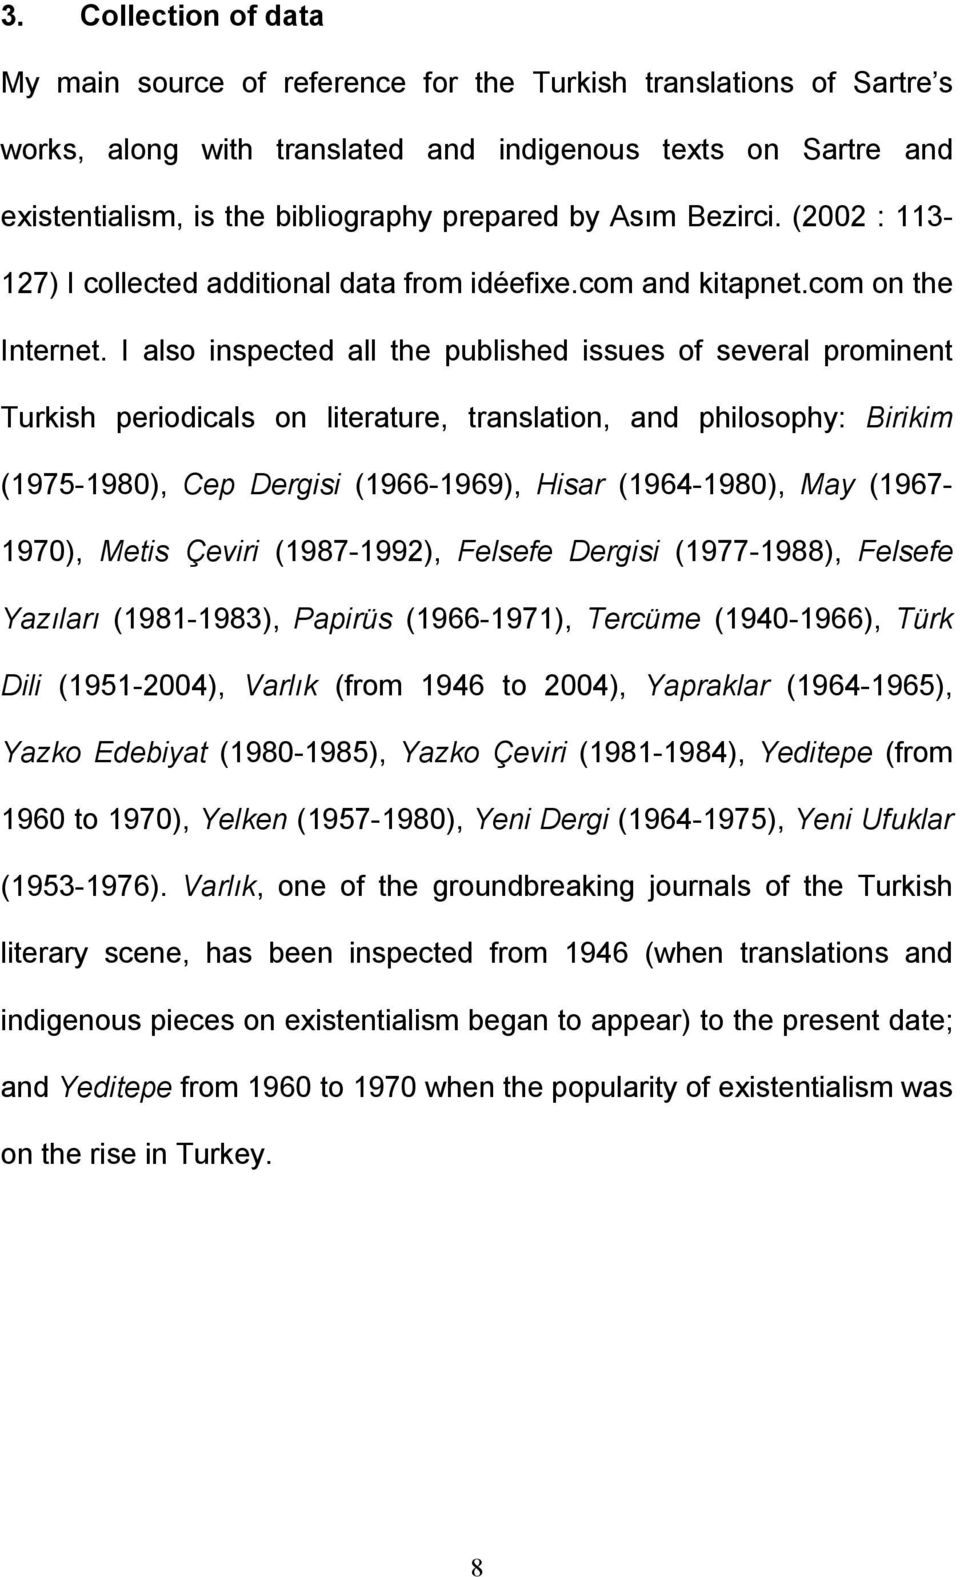 I also inspected all the published issues of several prominent Turkish periodicals on literature, translation, and philosophy: Birikim (1975-1980), Cep Dergisi (1966-1969), Hisar (1964-1980), May